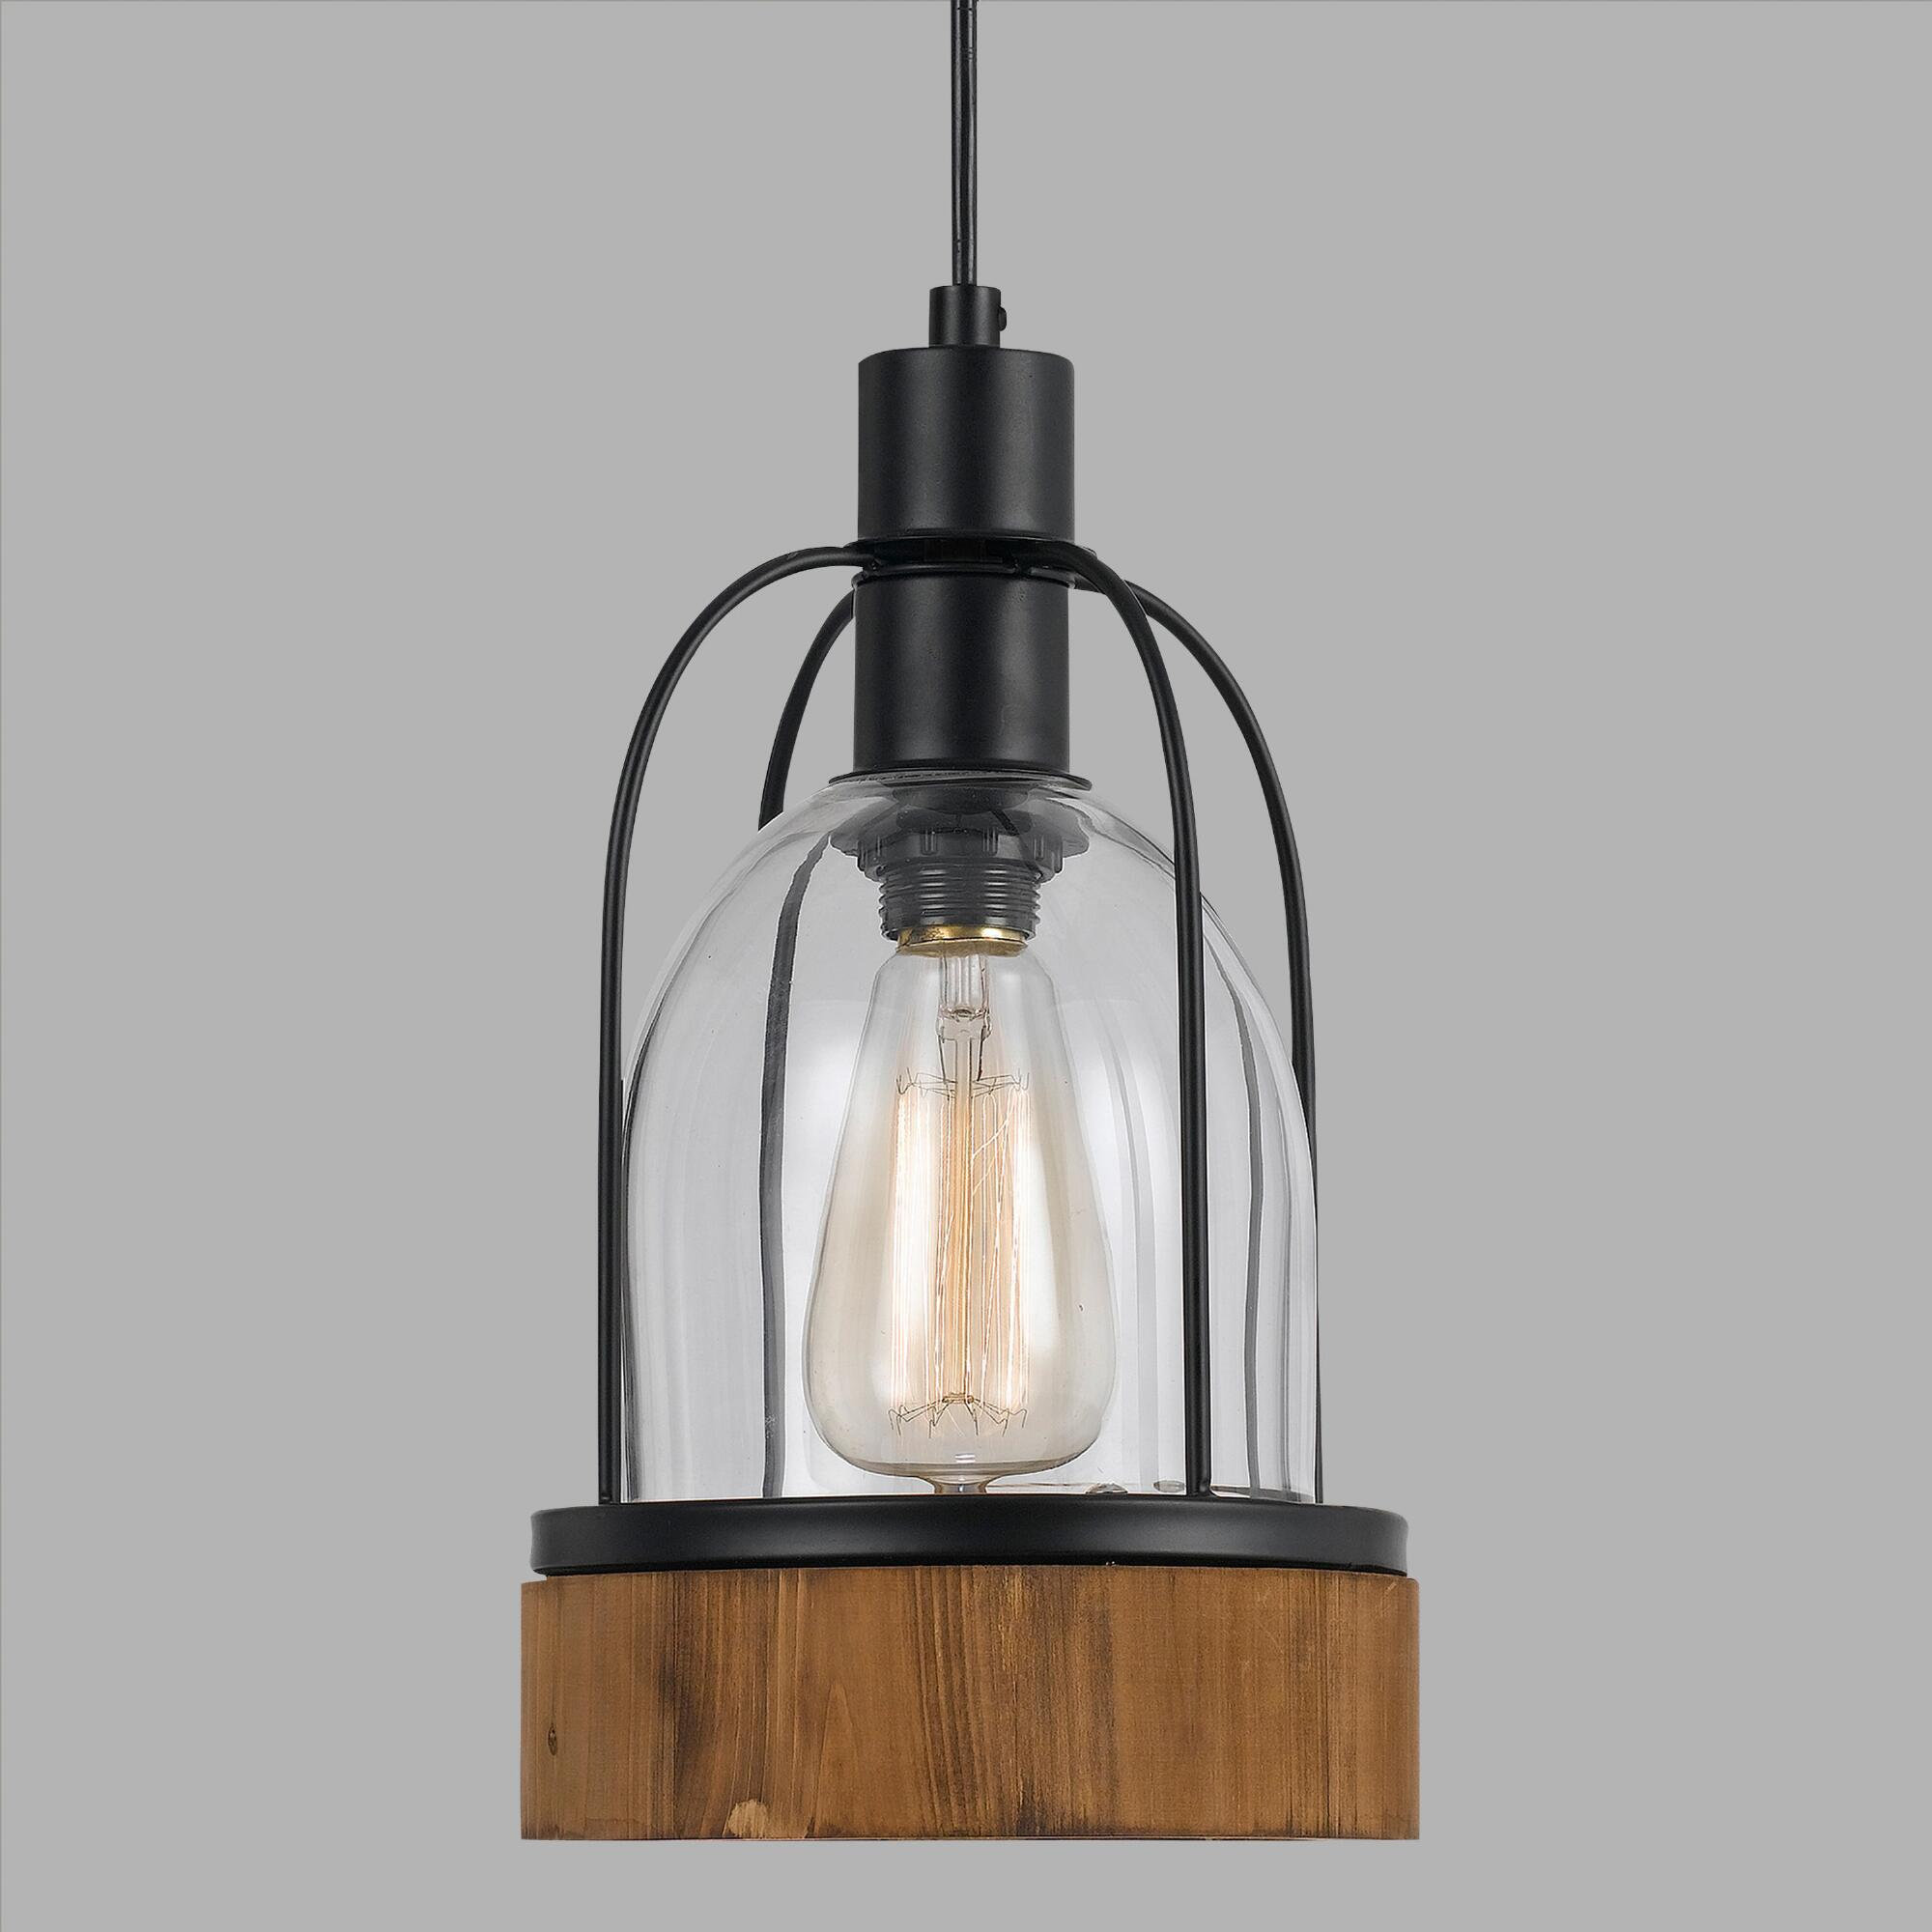 wood and glass industrial style pendant lamp world market. Black Bedroom Furniture Sets. Home Design Ideas